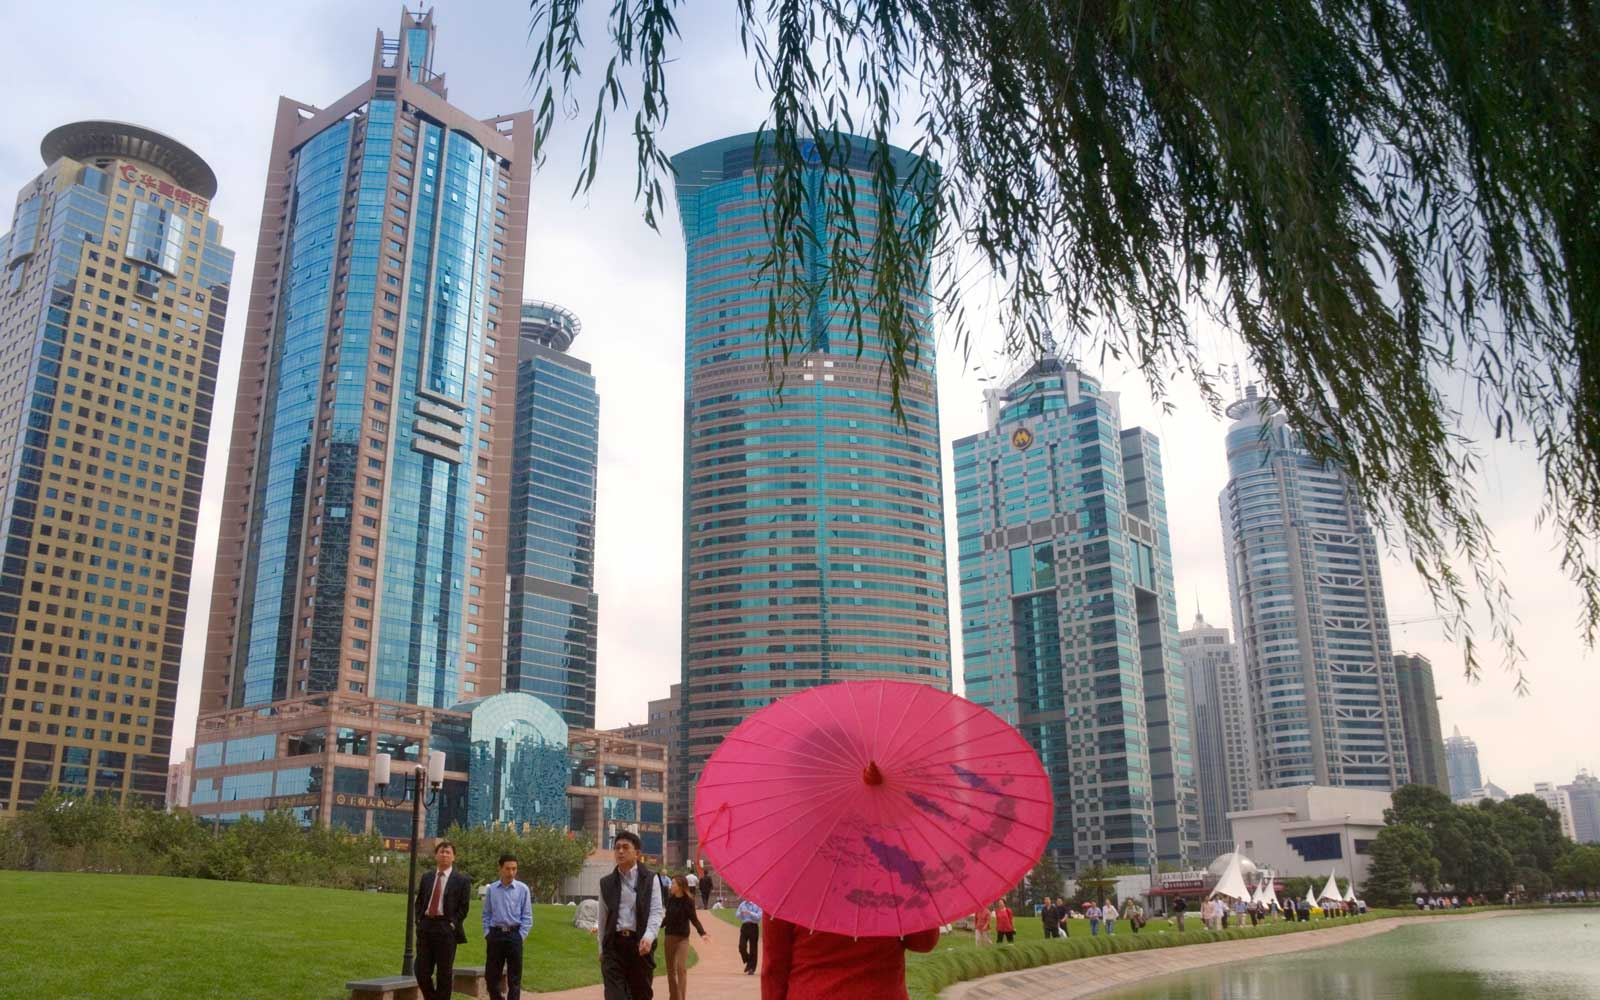 Woman with umbrella in Century Park, Pudong area, Shanghai